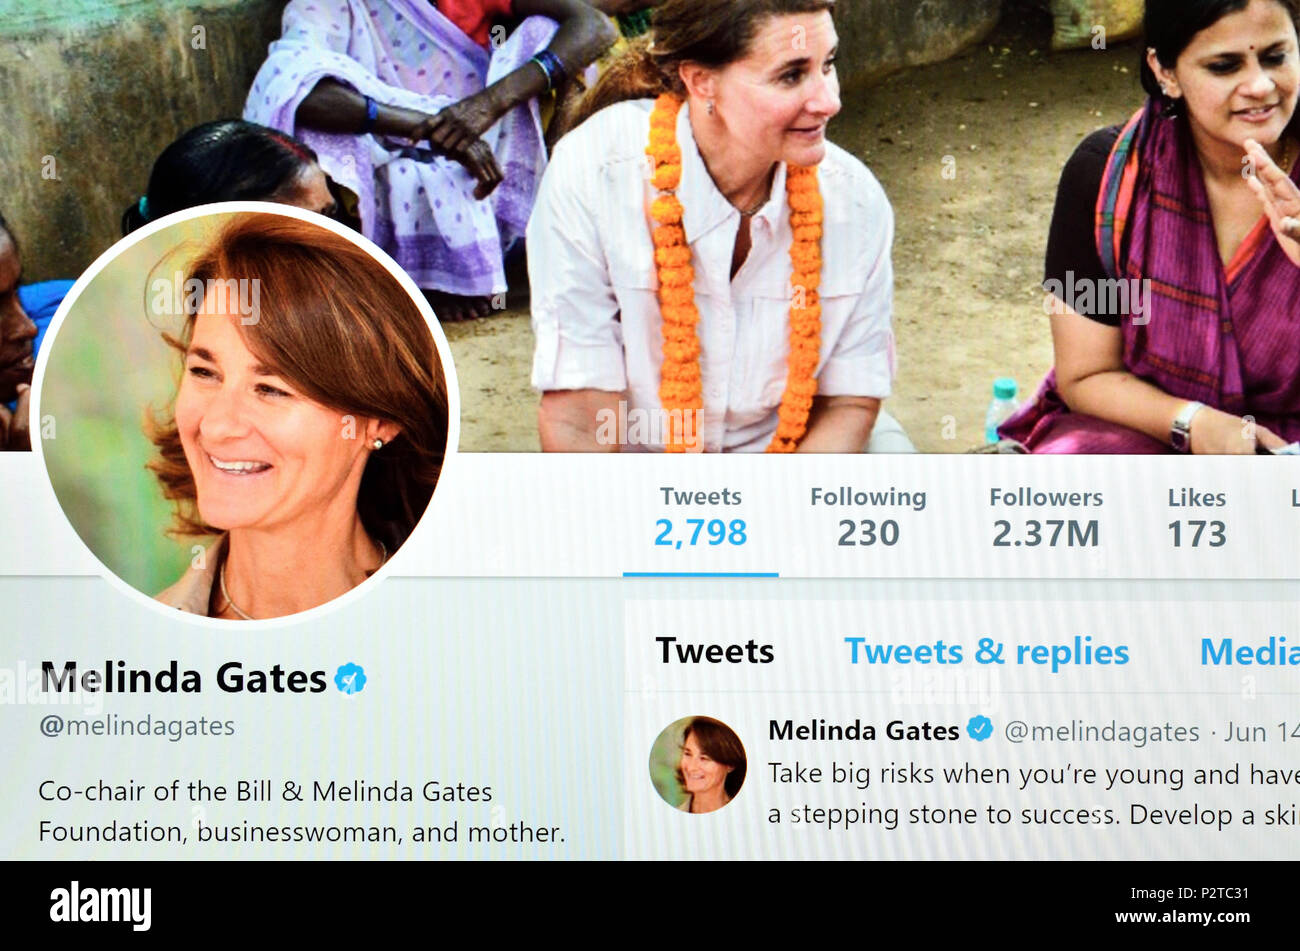 Melinda Gates official Twitter page (2018) - Stock Image